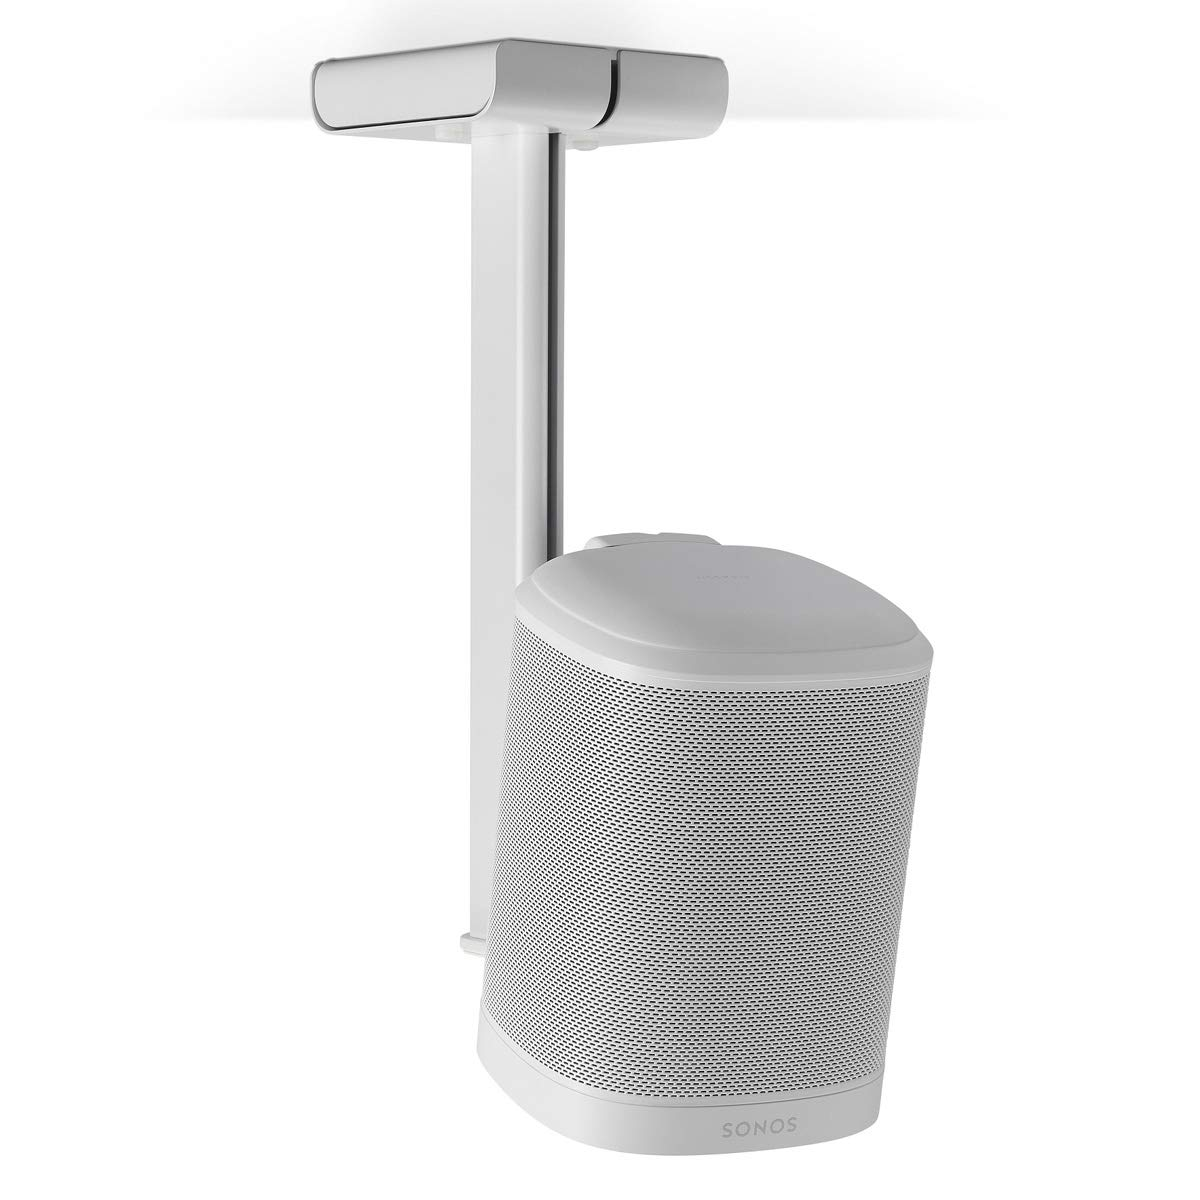 Flexson Ceiling Mount for Sonos One or Play:1 (White) by Flexson